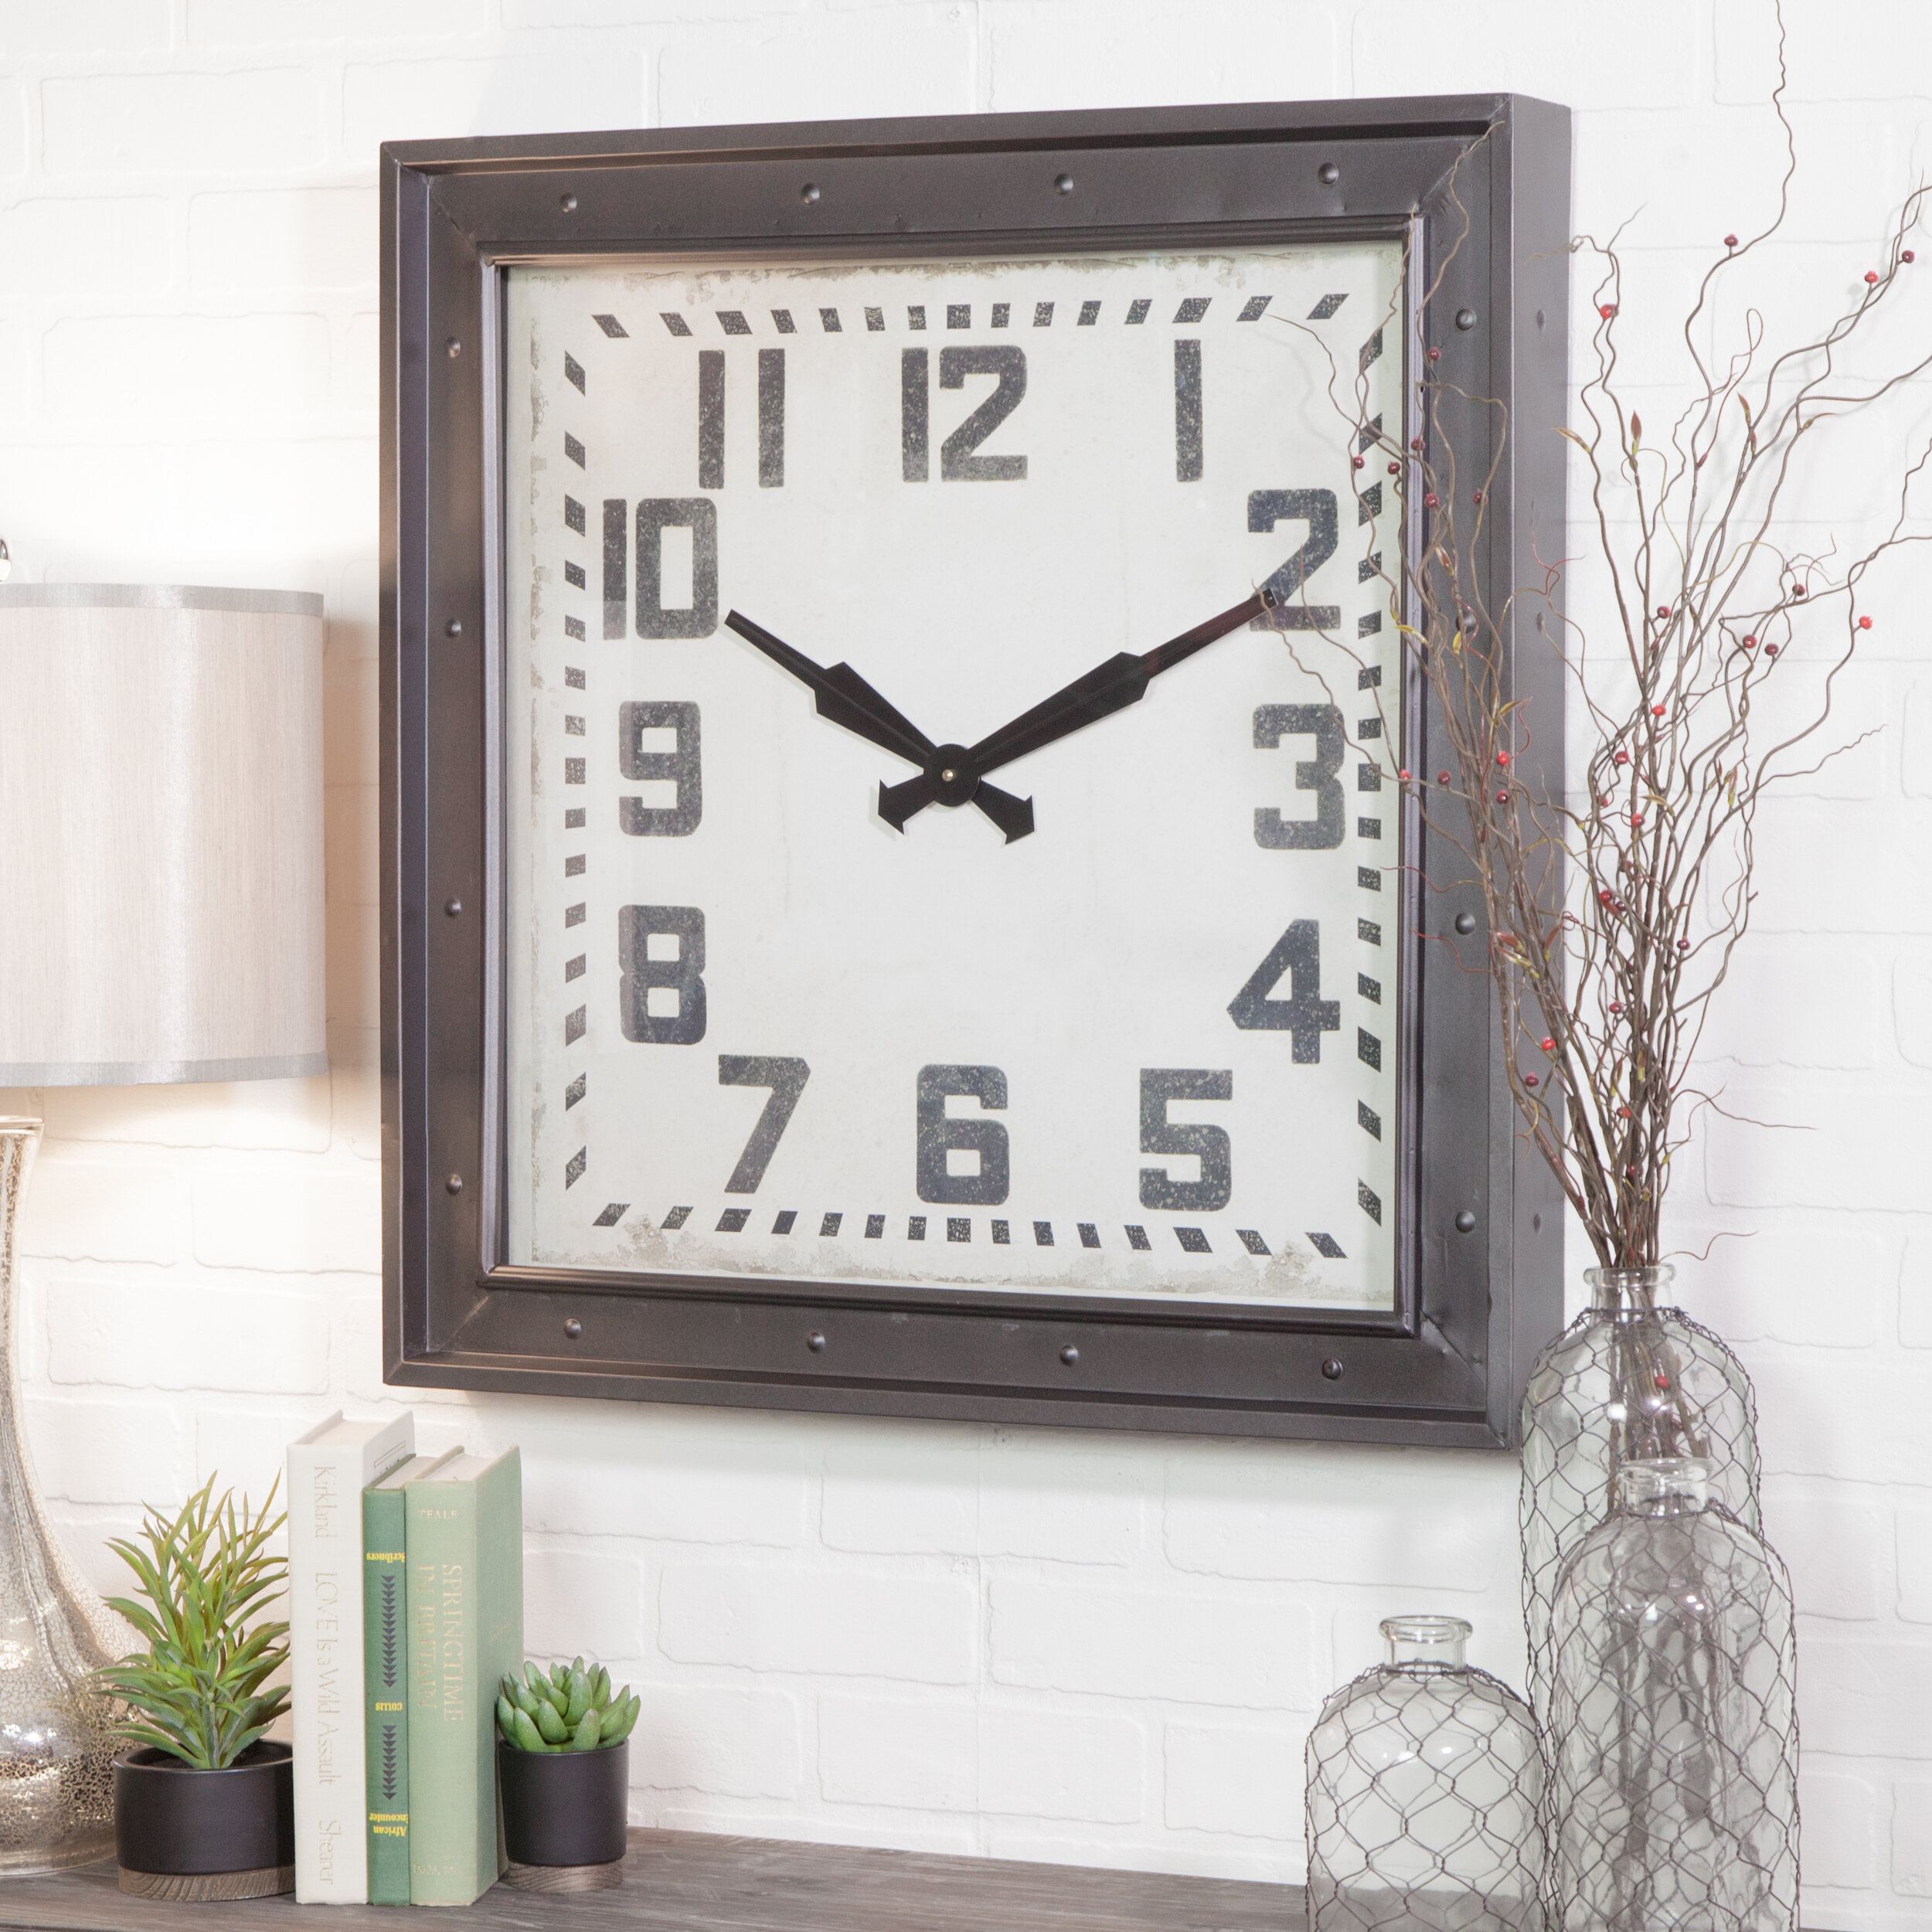 Aspire Westford Square Wall Clock U0026 Reviews | Wayfair